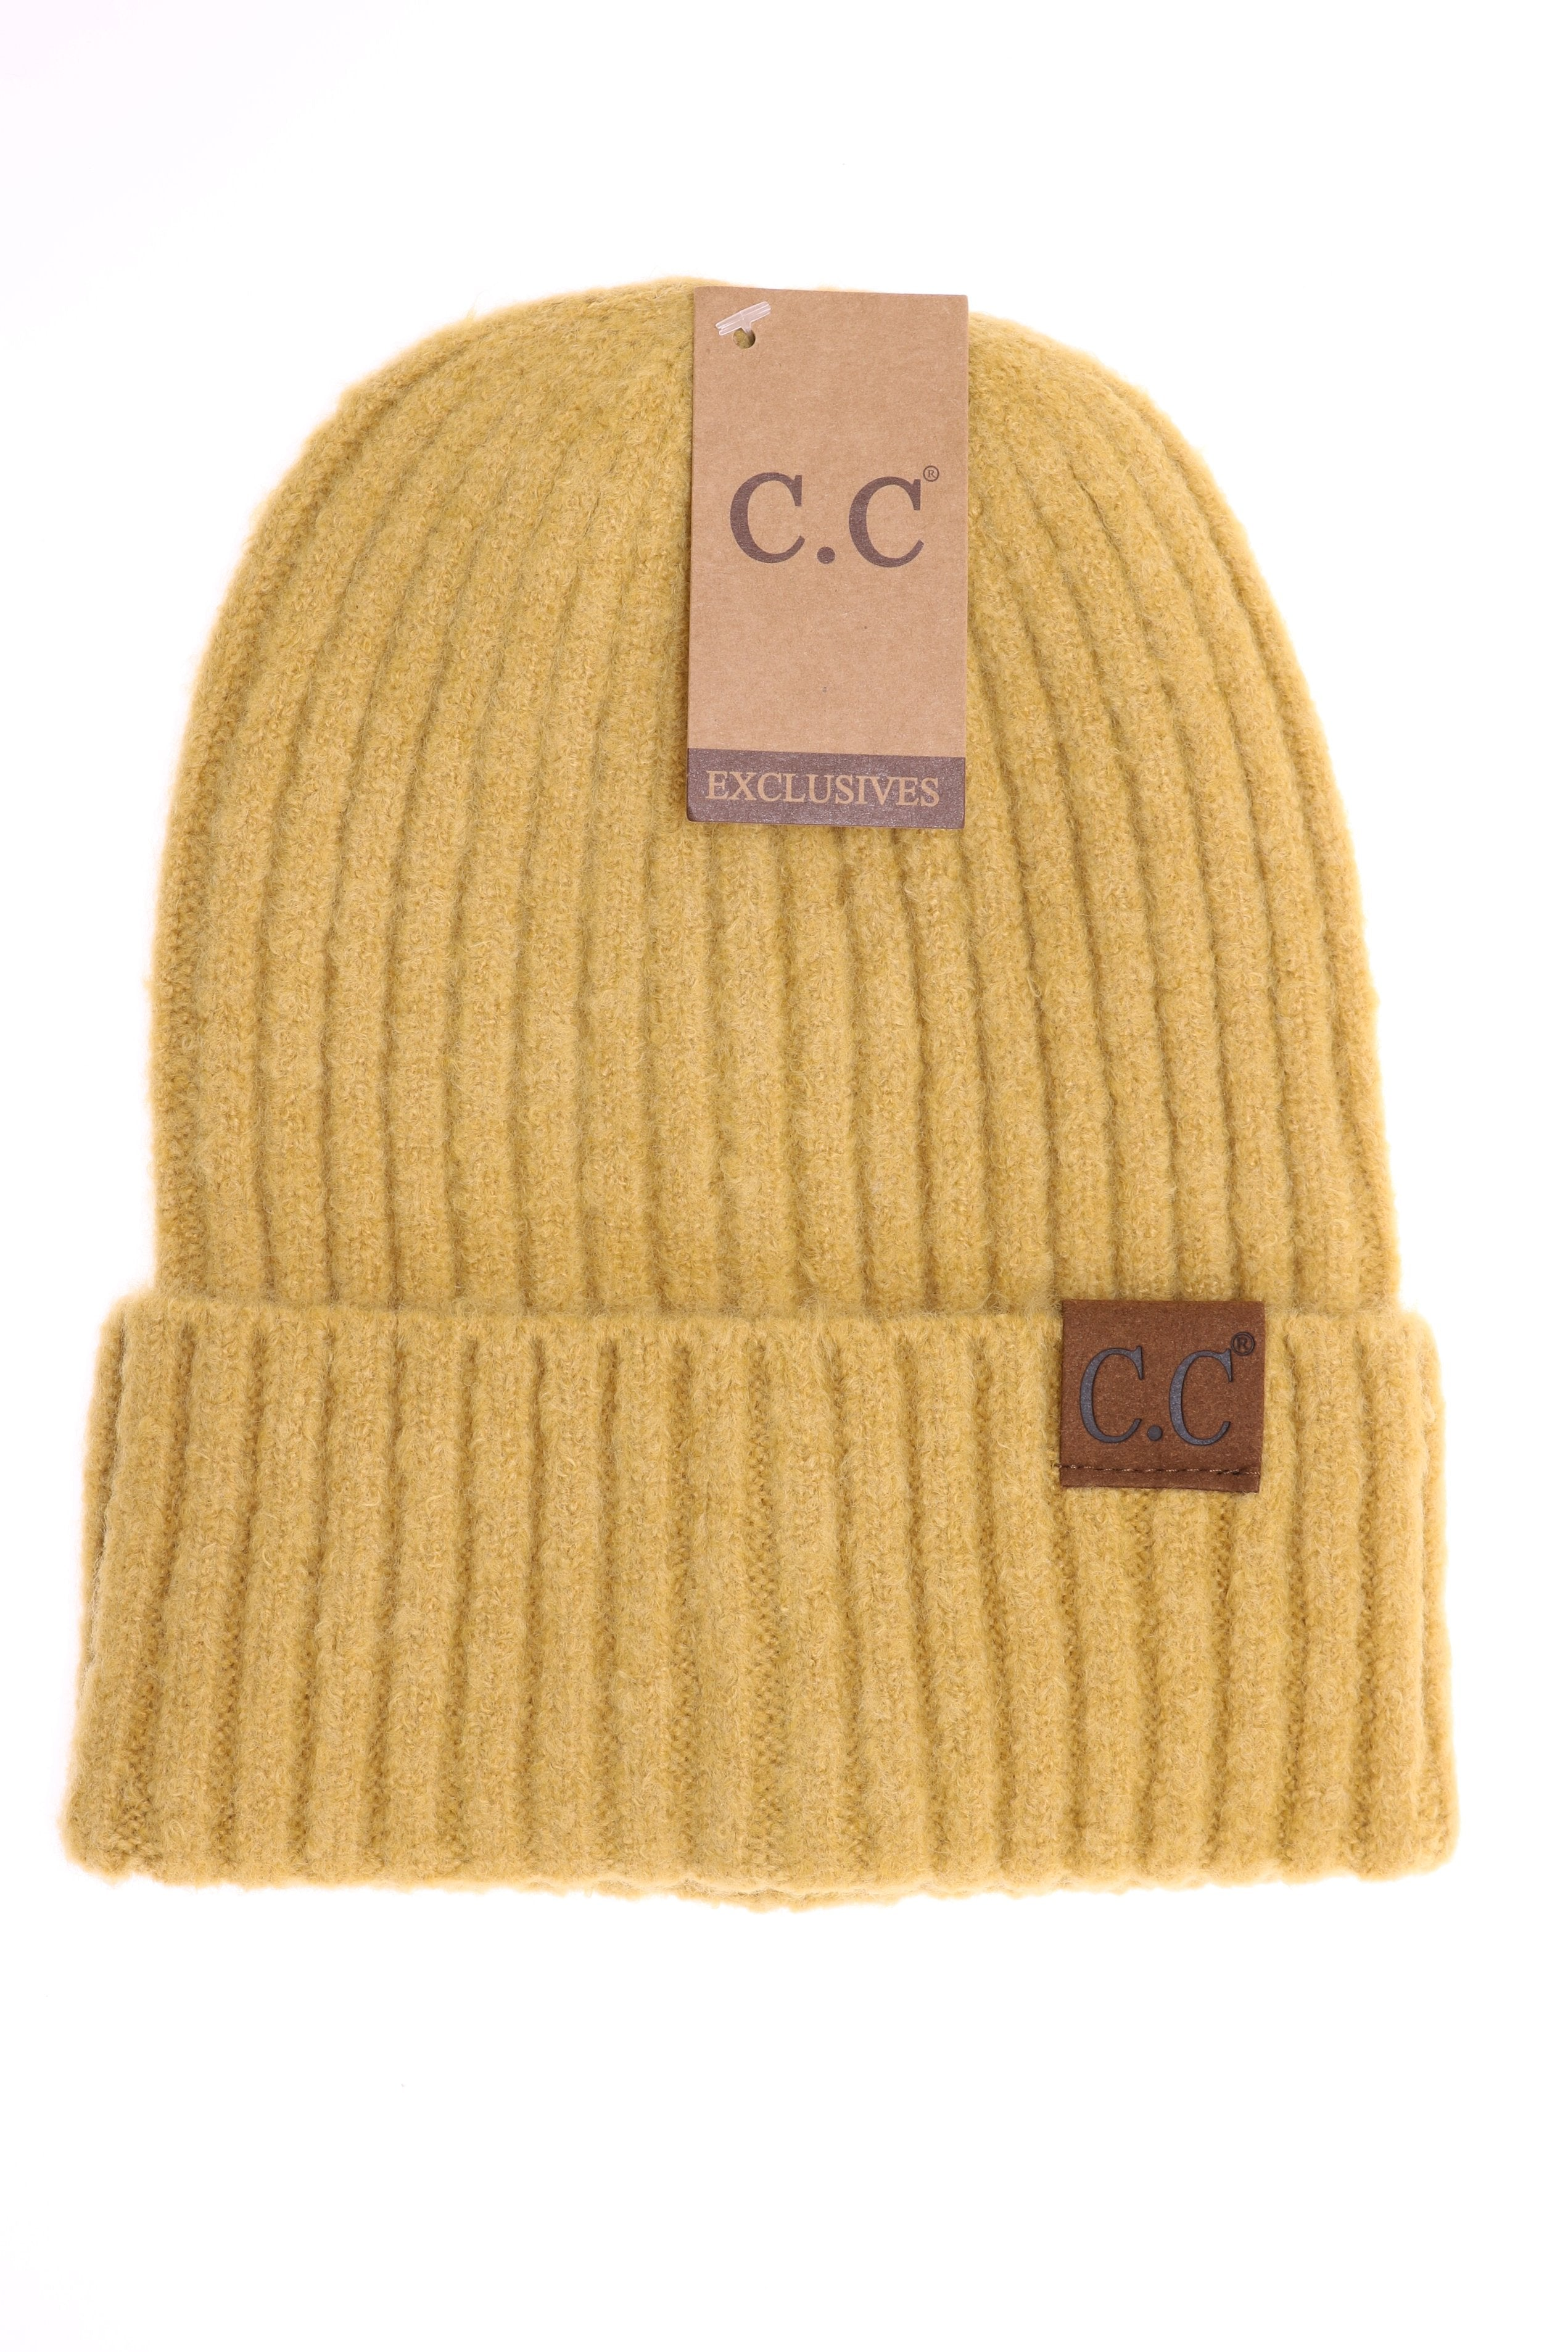 Solid Ribbed CC Beanie